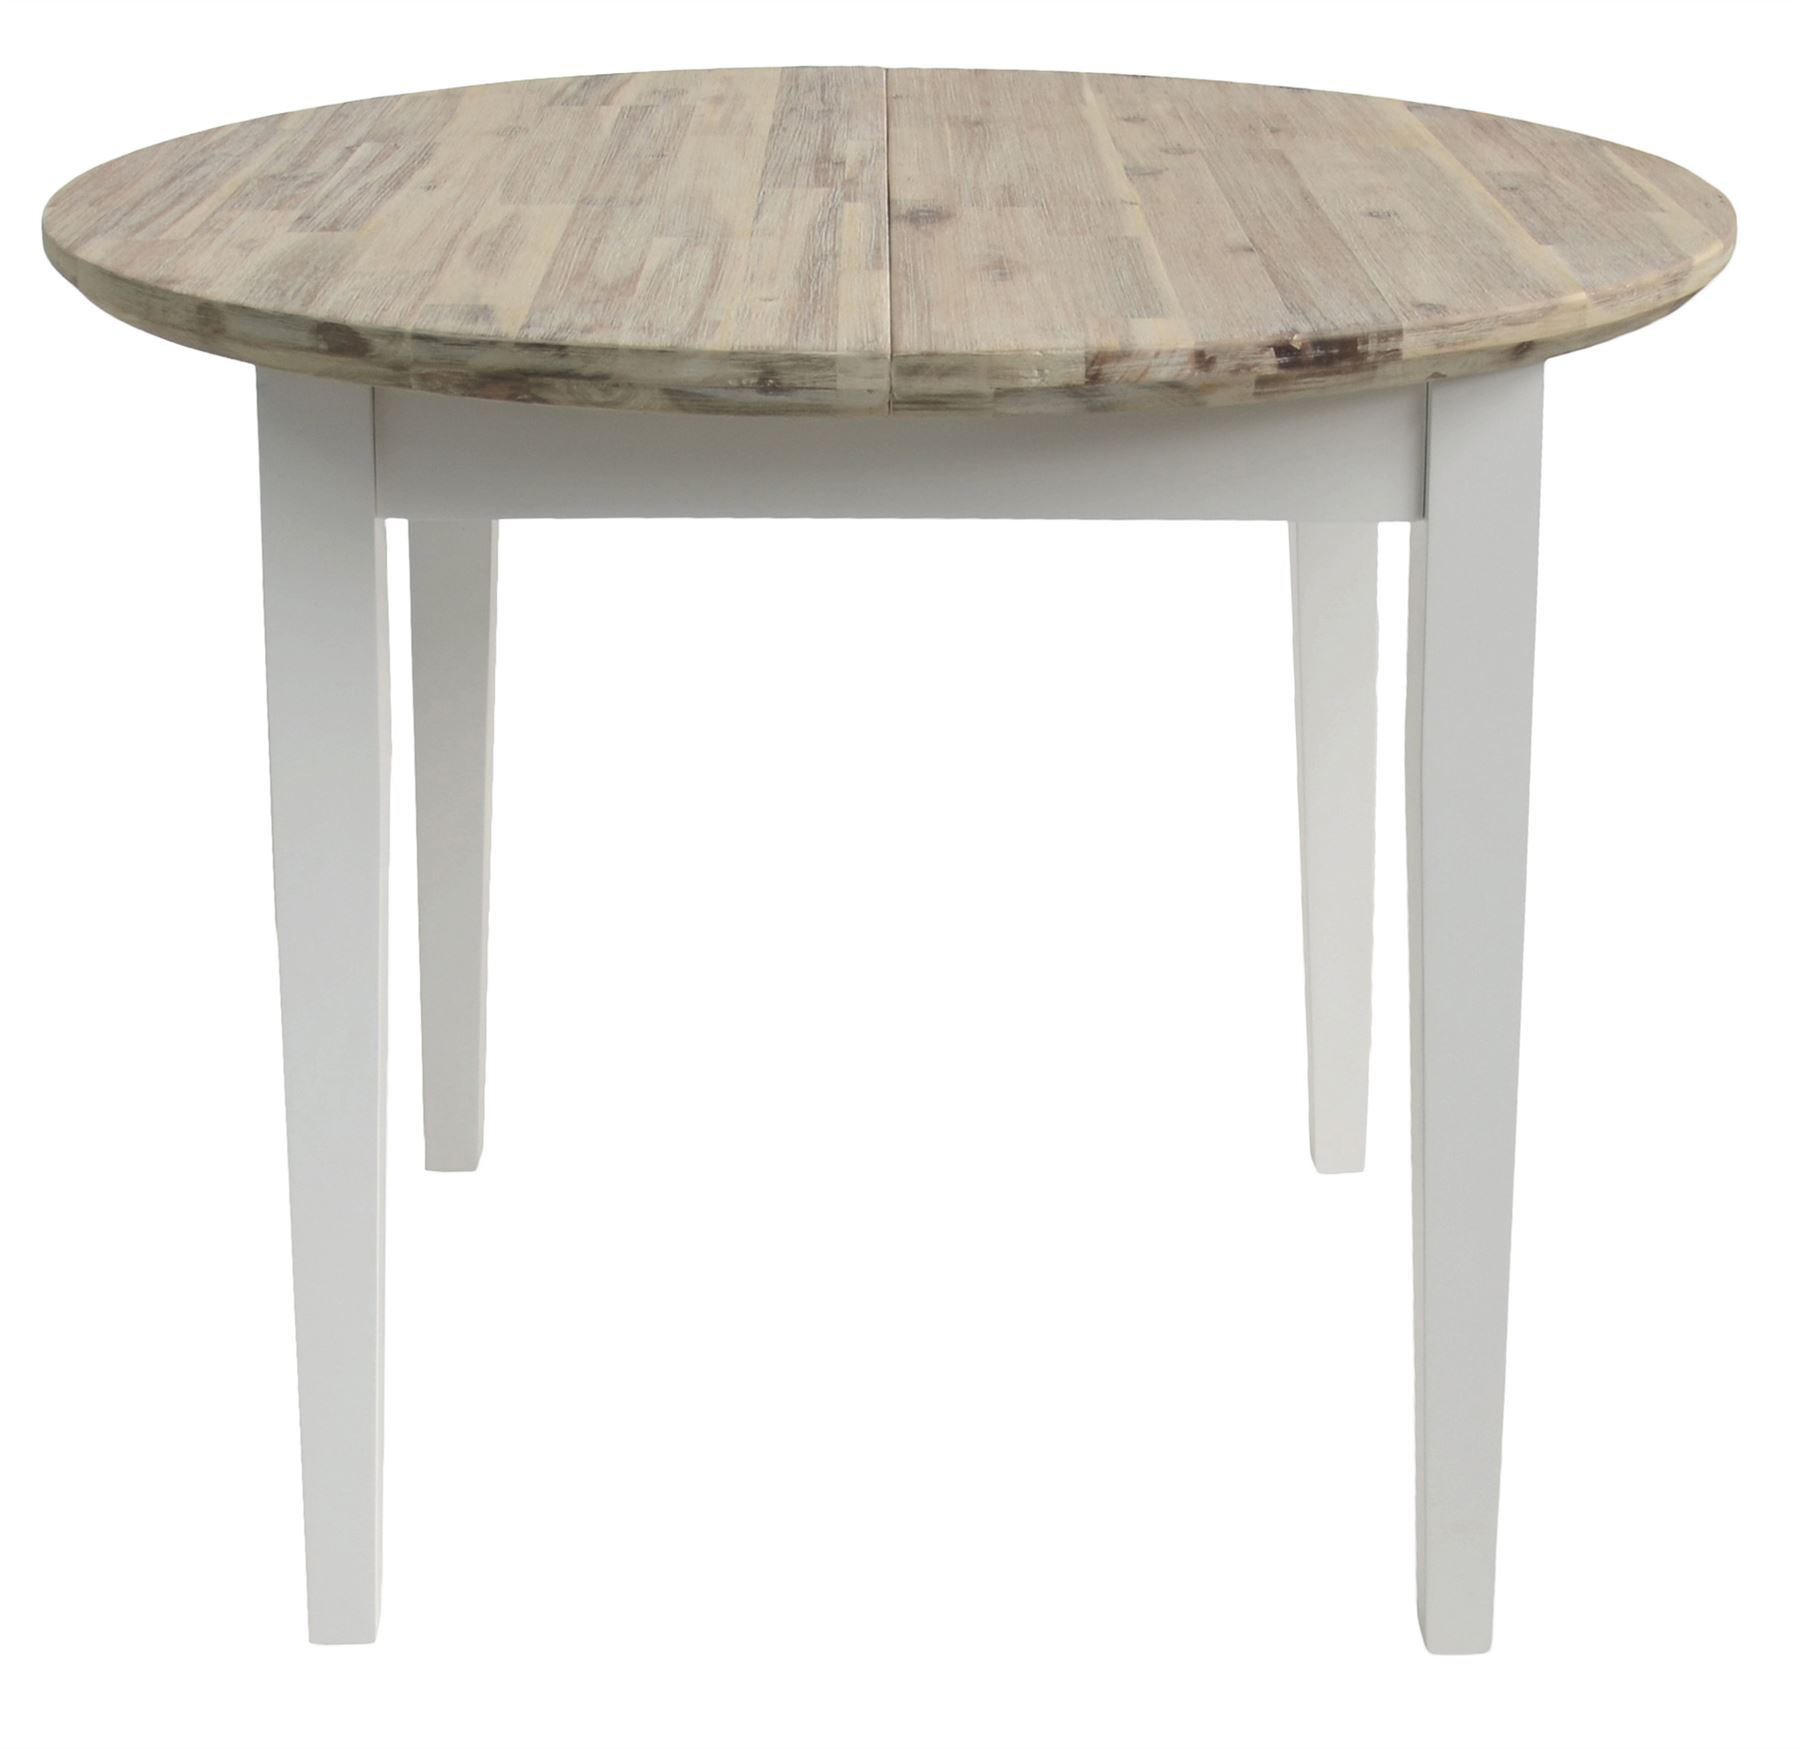 Diy Extendable Dining Table Florence Round Extending Table 92 117cm Kitchen Dining